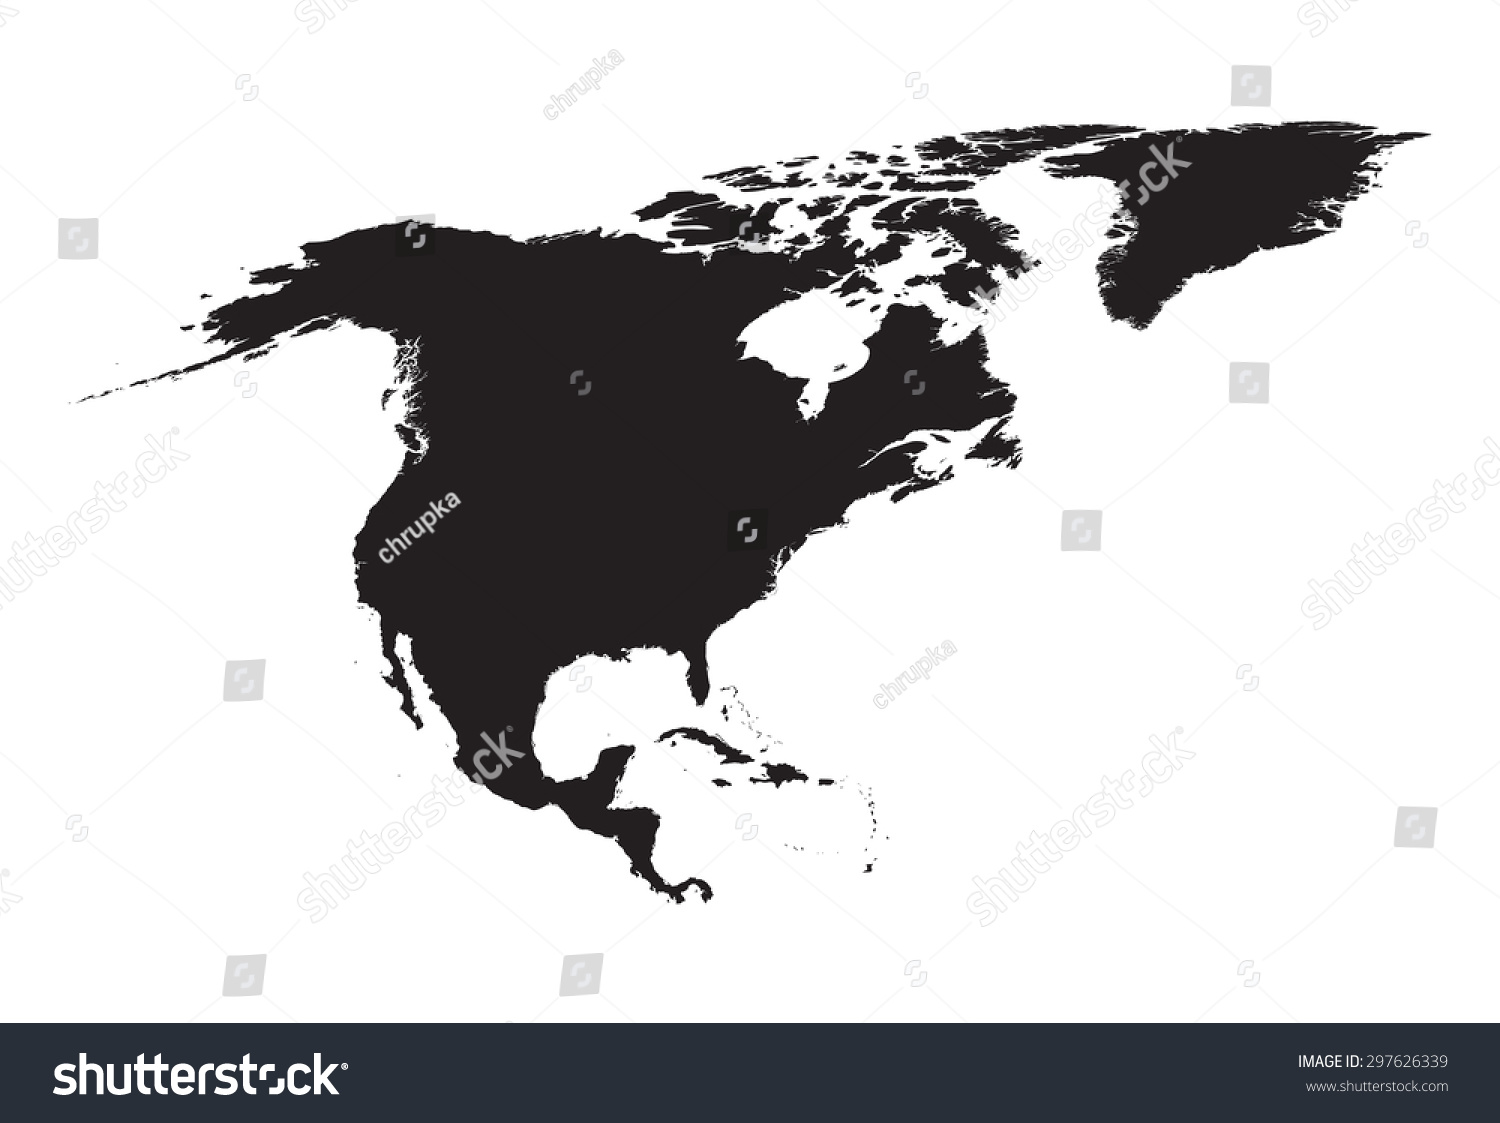 Black White Map North America Stock Vector Shutterstock - North america map black and white